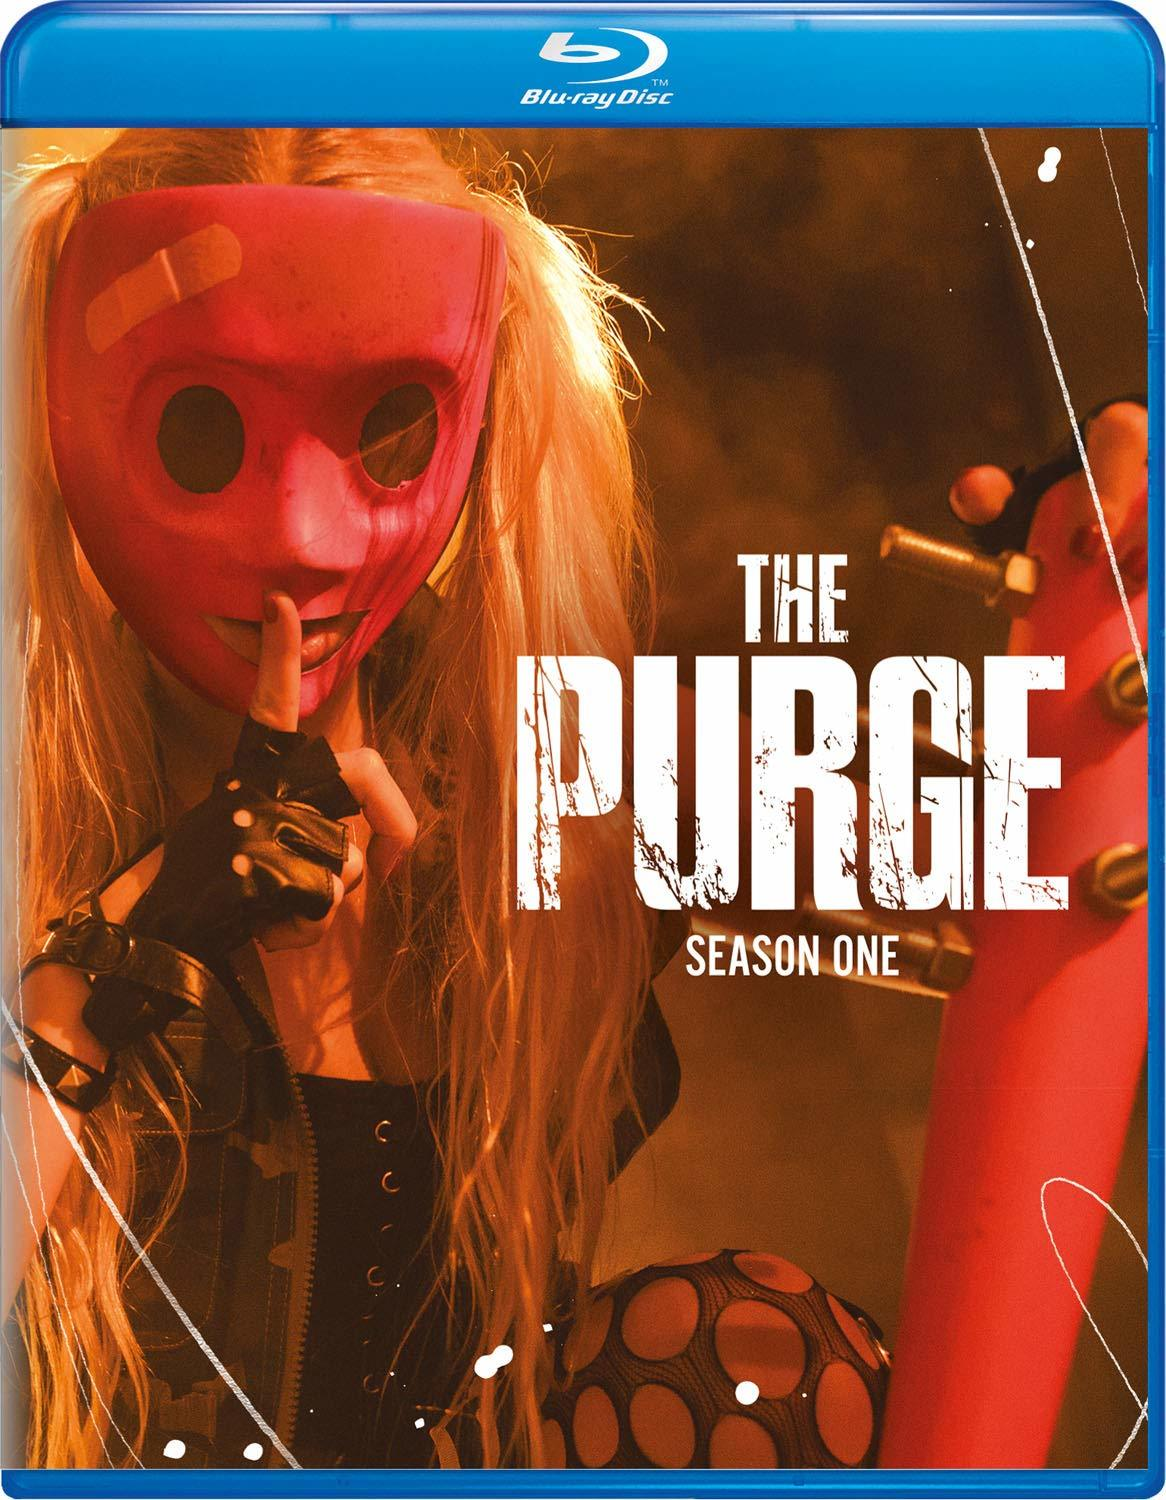 The Purge: Season One (Blu-ray)(Region A)